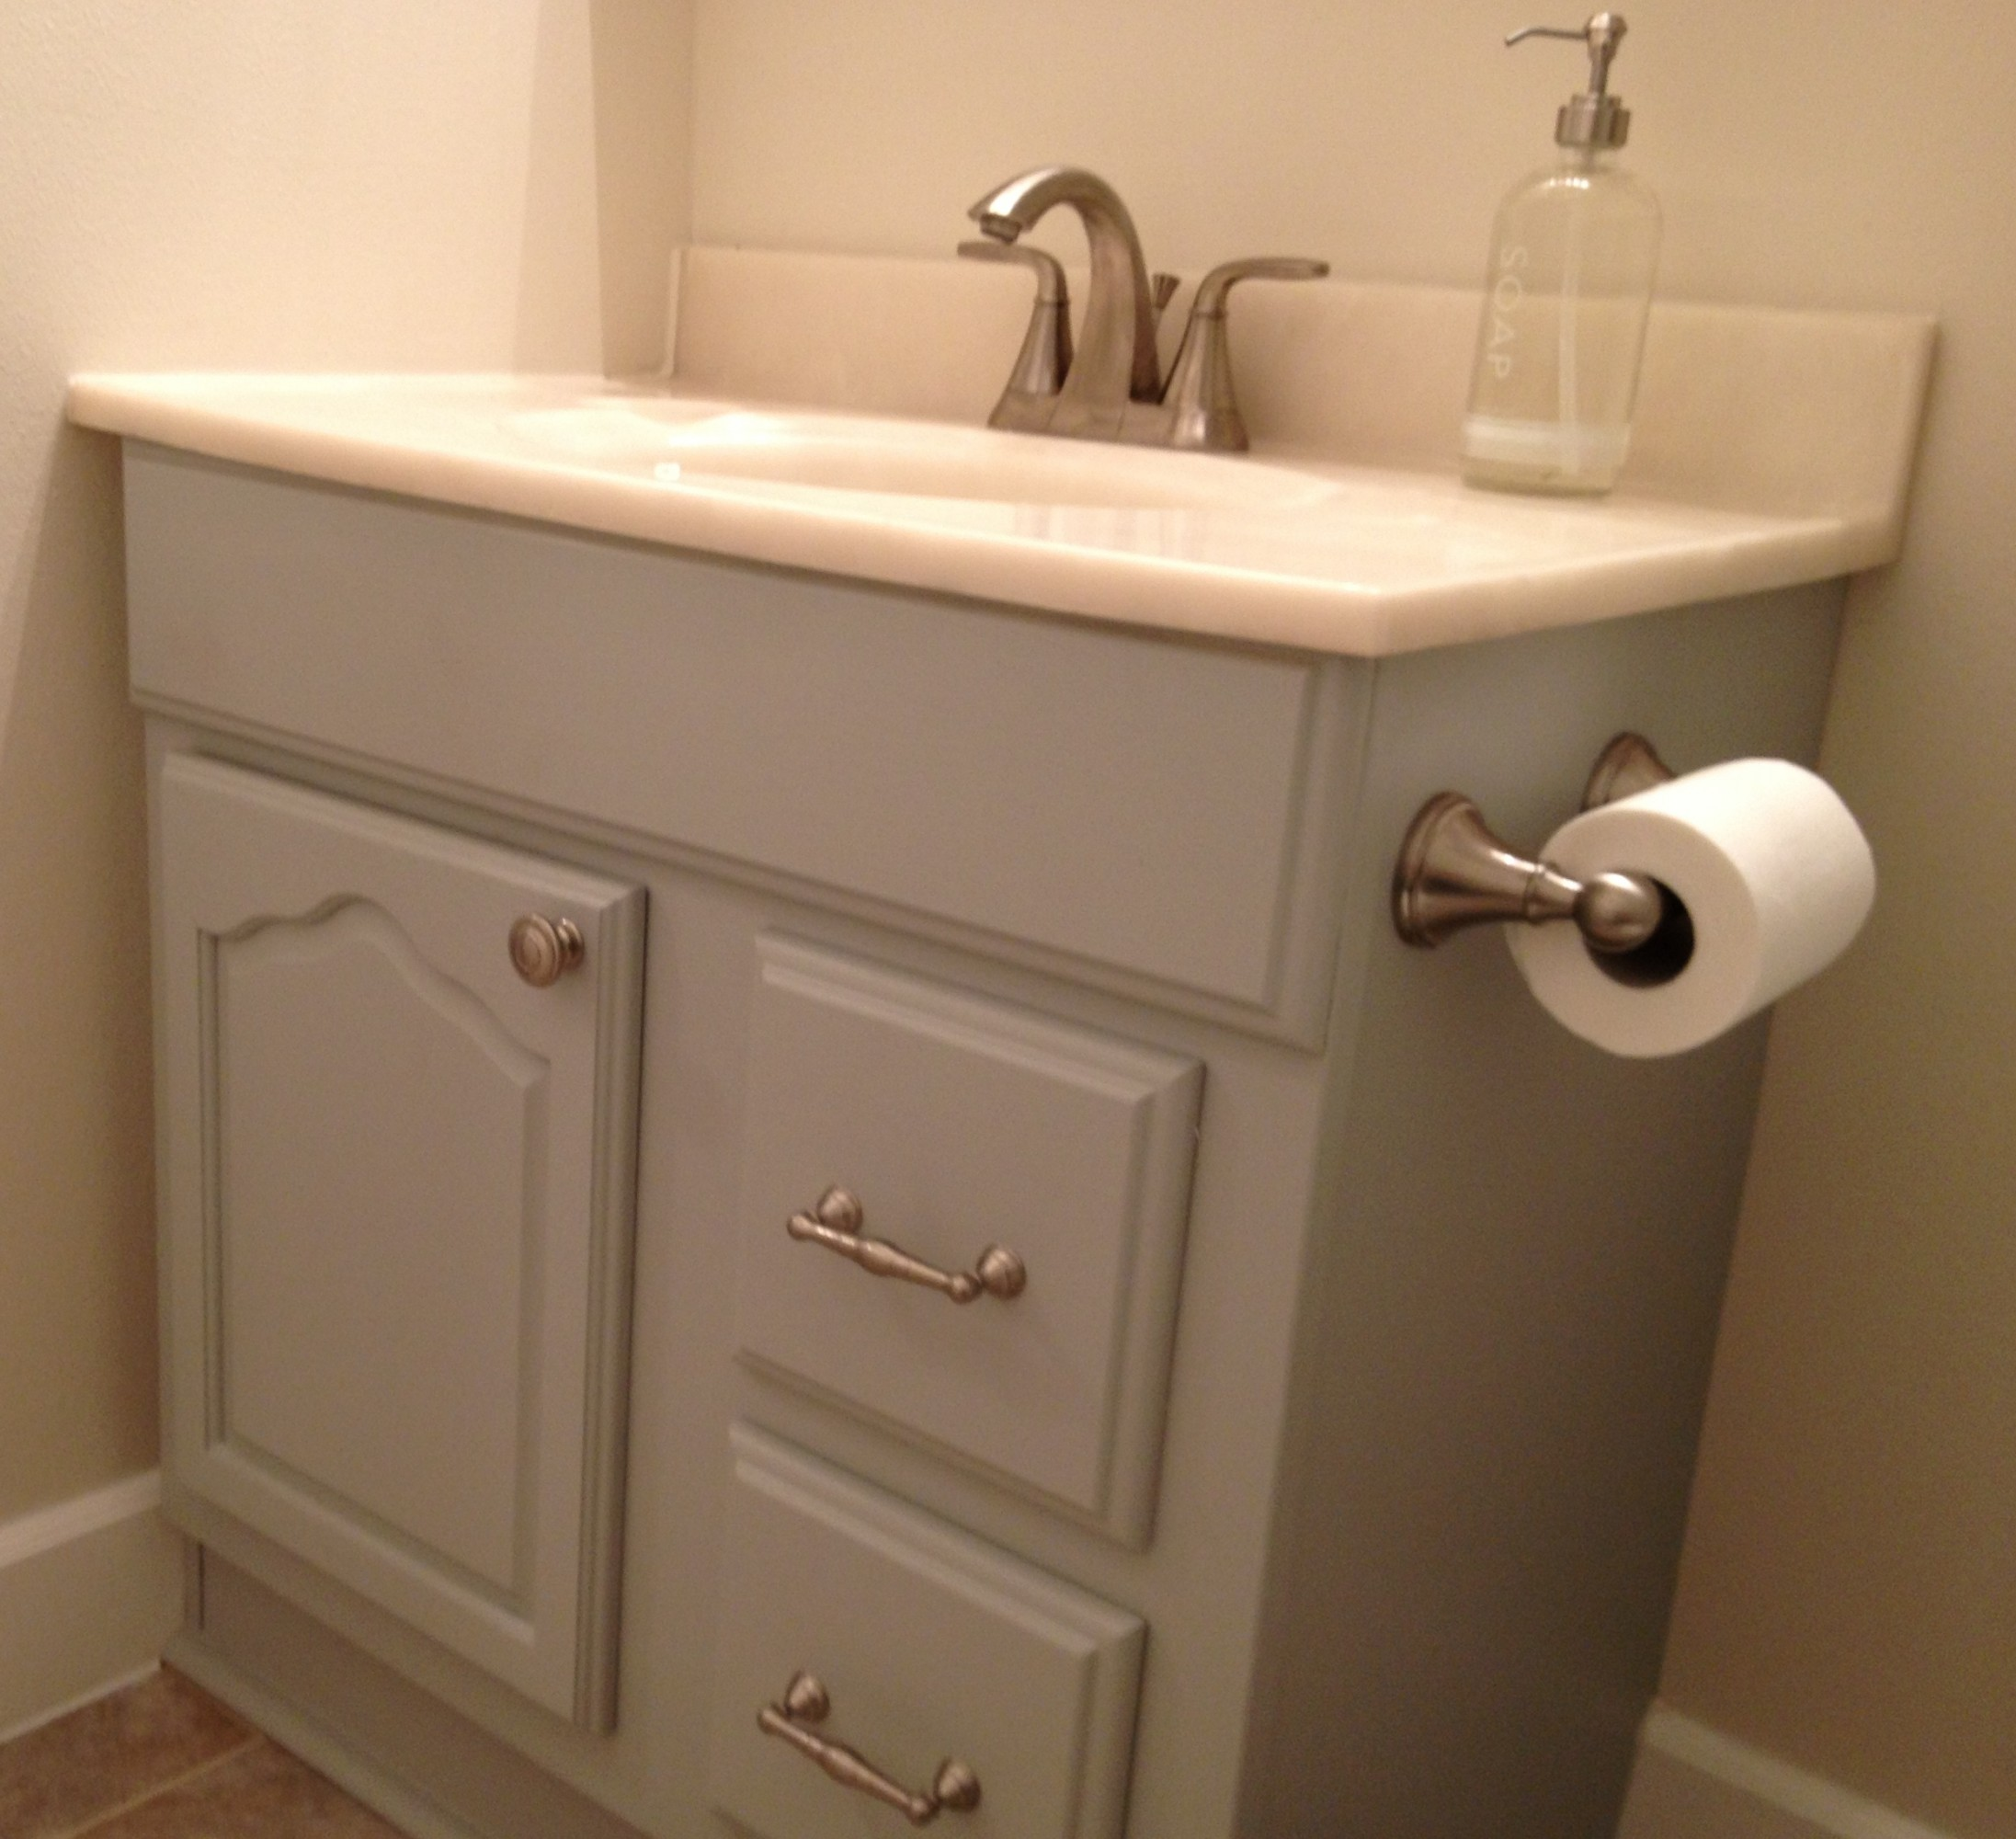 Home Depot Bathroom Design Bathroom Cabinet Doors Home Depot